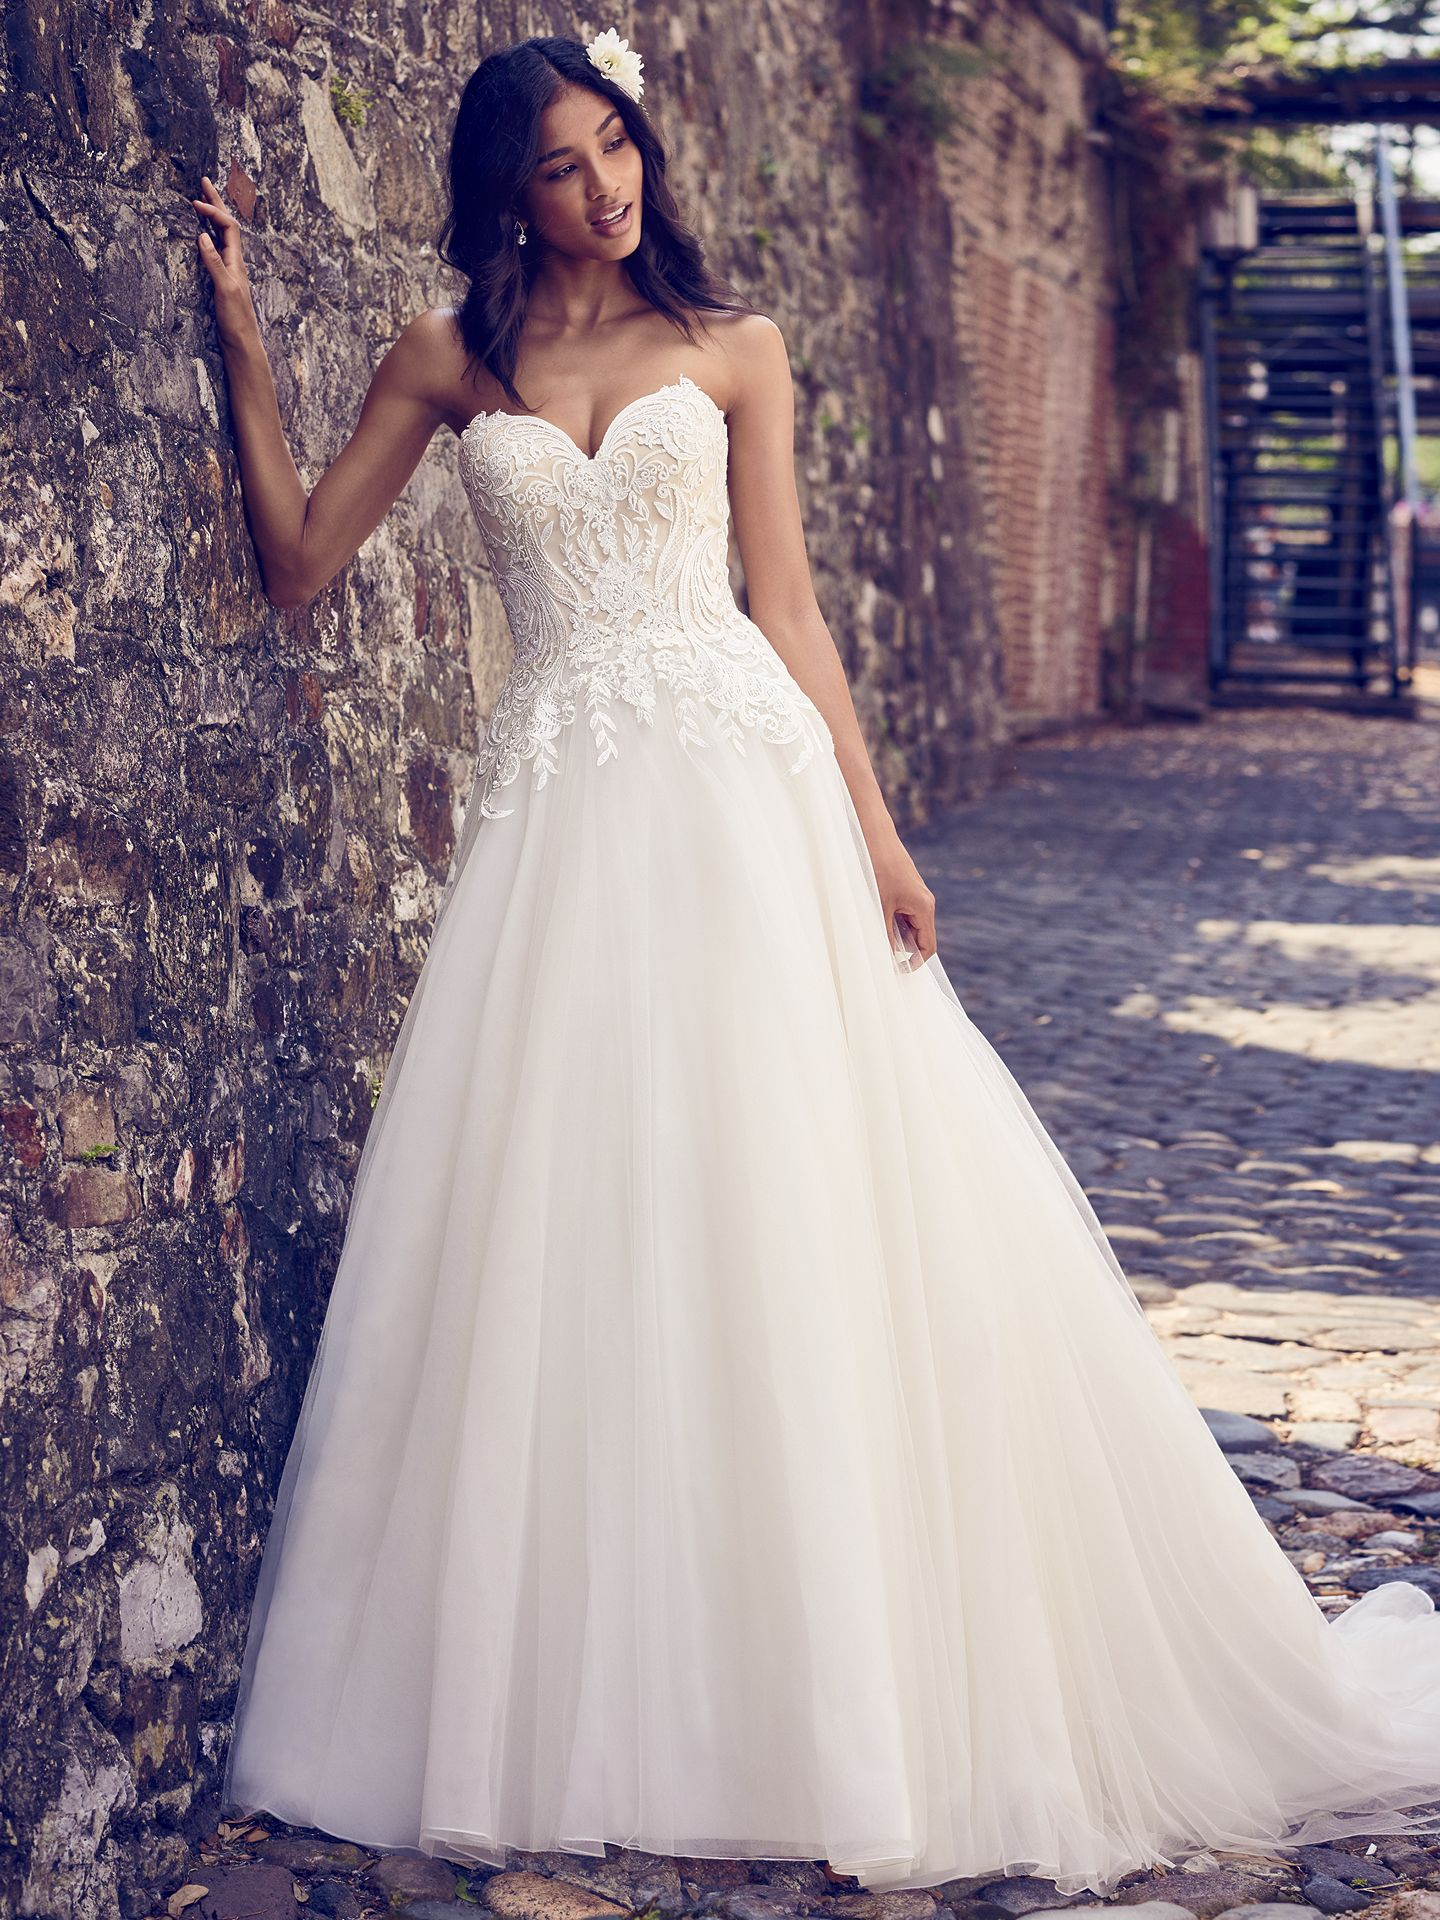 Maggie-Sottero-Wedding-Dress-Rayna-8MN498-Main